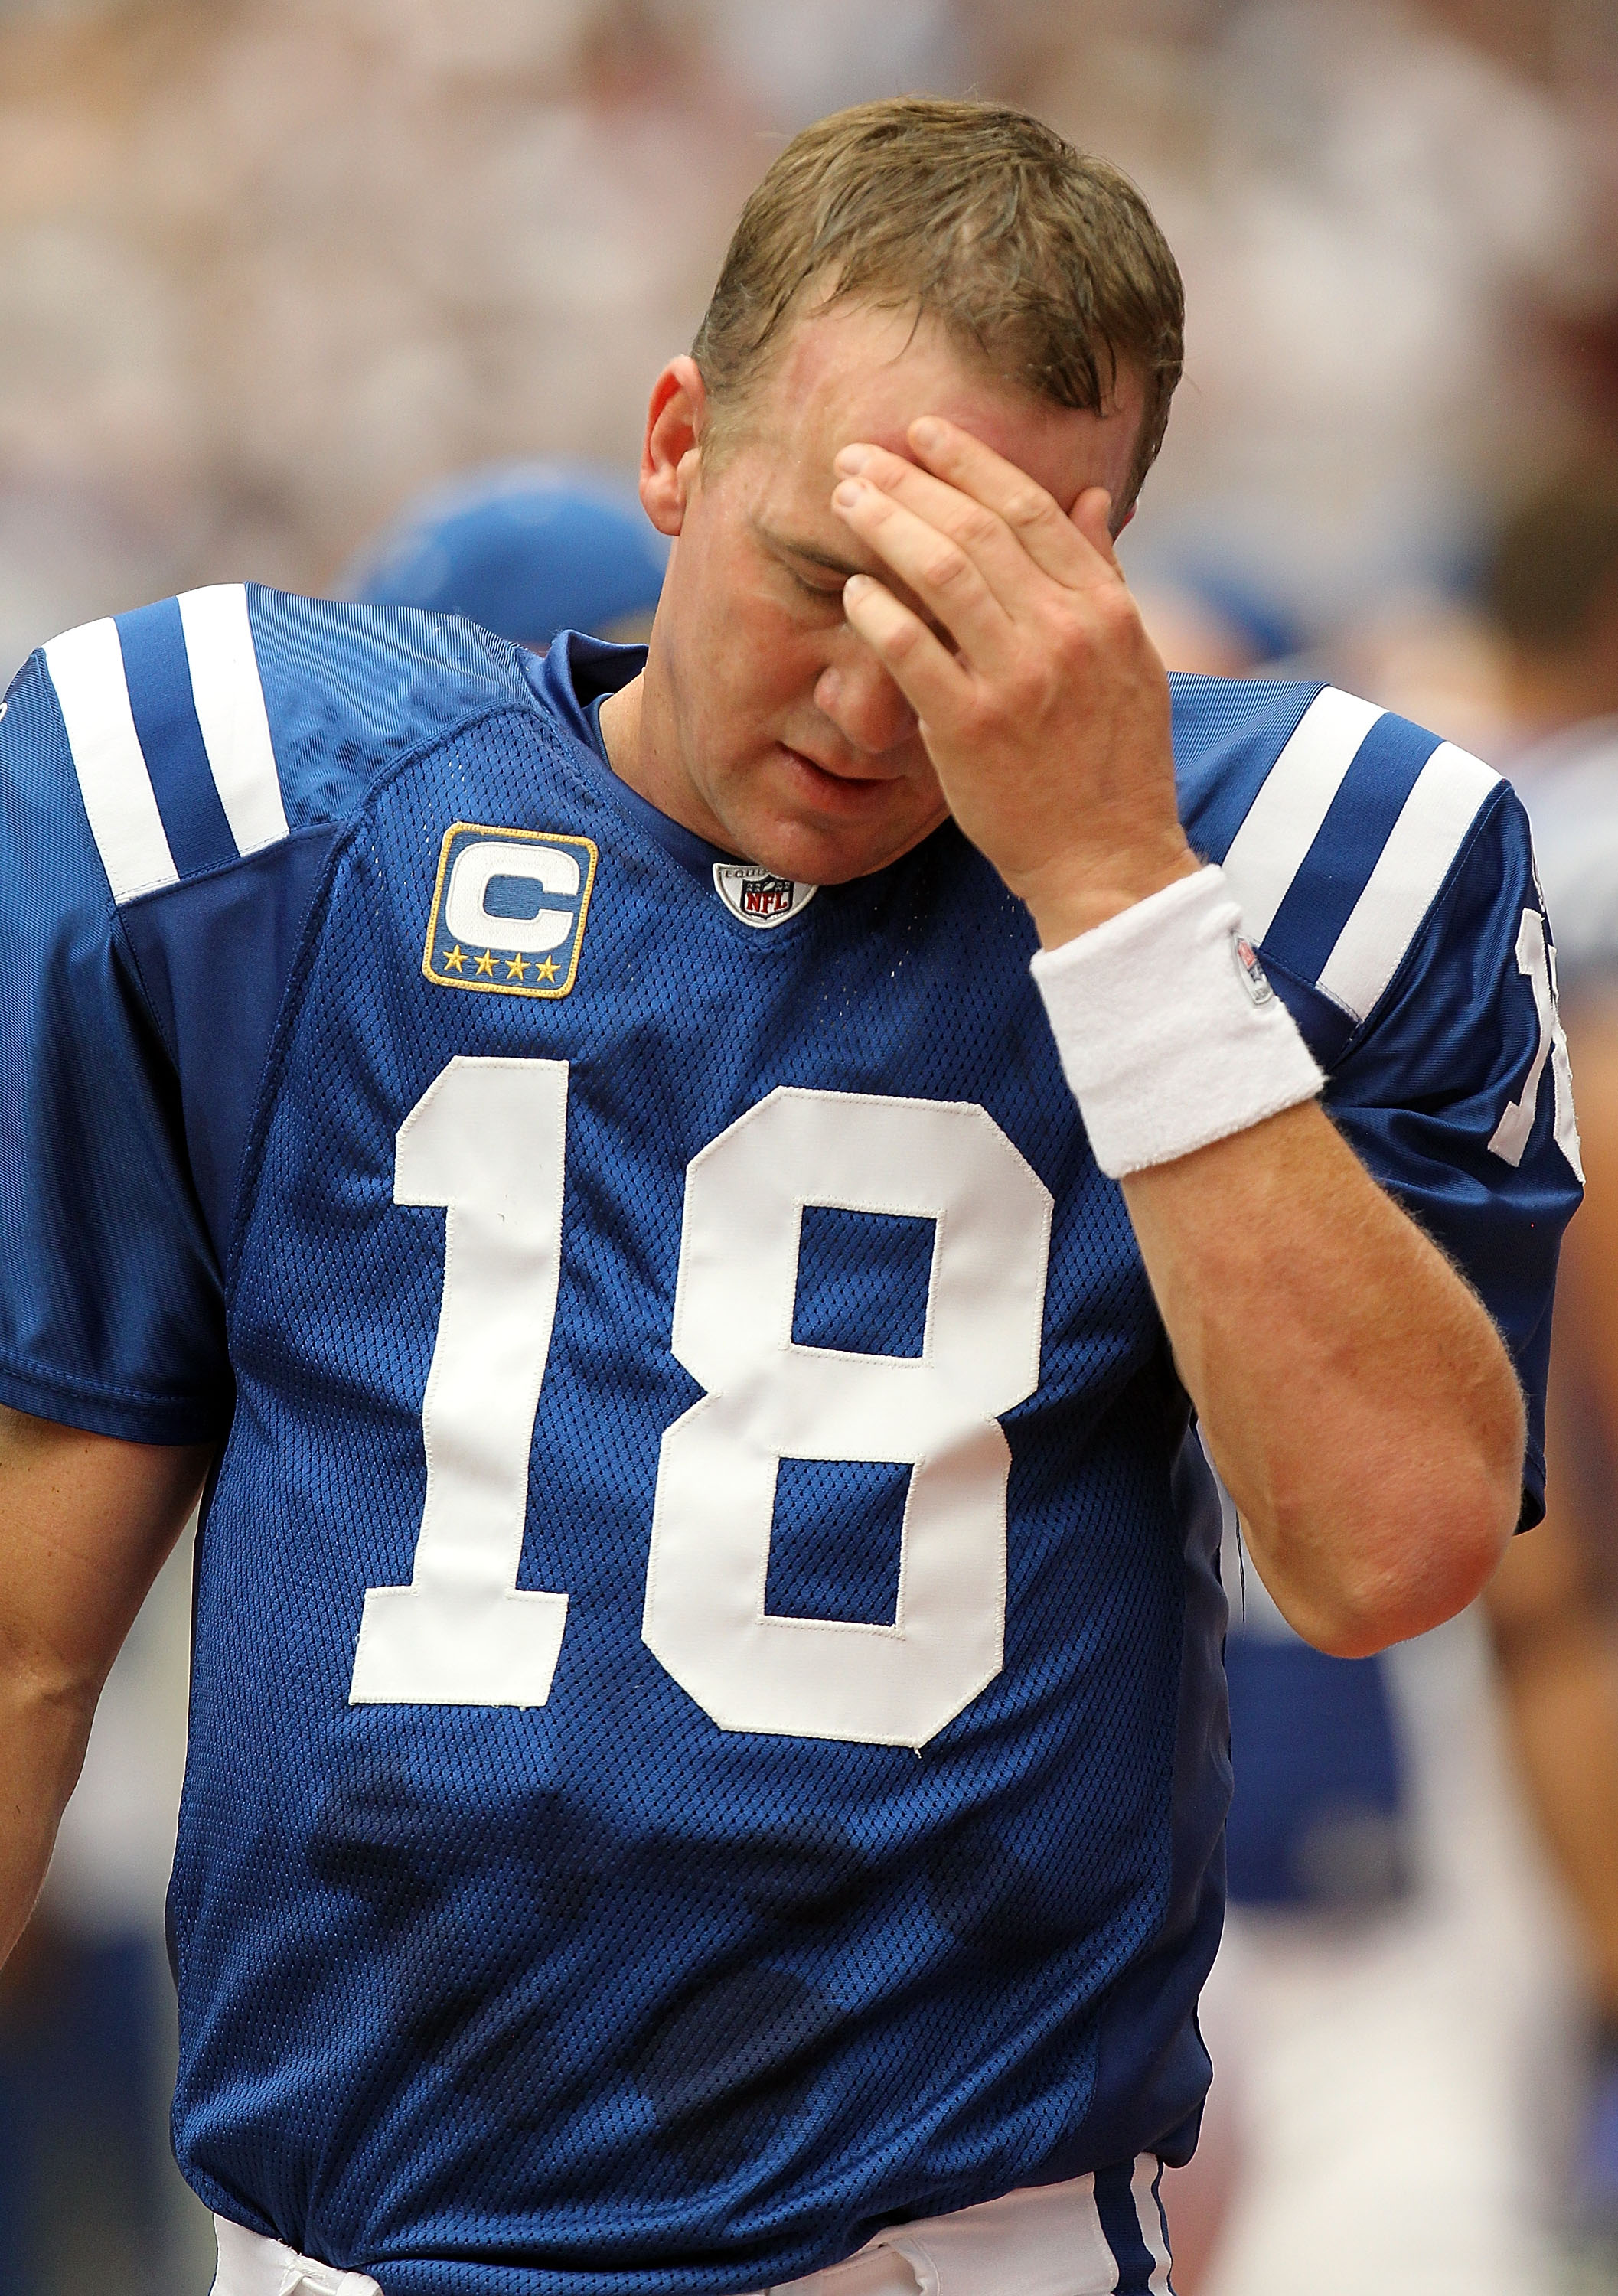 HOUSTON - SEPTEMBER 12:  Quarterback Peyton Manning #18 of the Indianapolis Colts reacts on the sidelines during the NFL season opener against the Houston Texans at Reliant Stadium on September 12, 2010 in Houston, Texas.  (Photo by Ronald Martinez/Getty